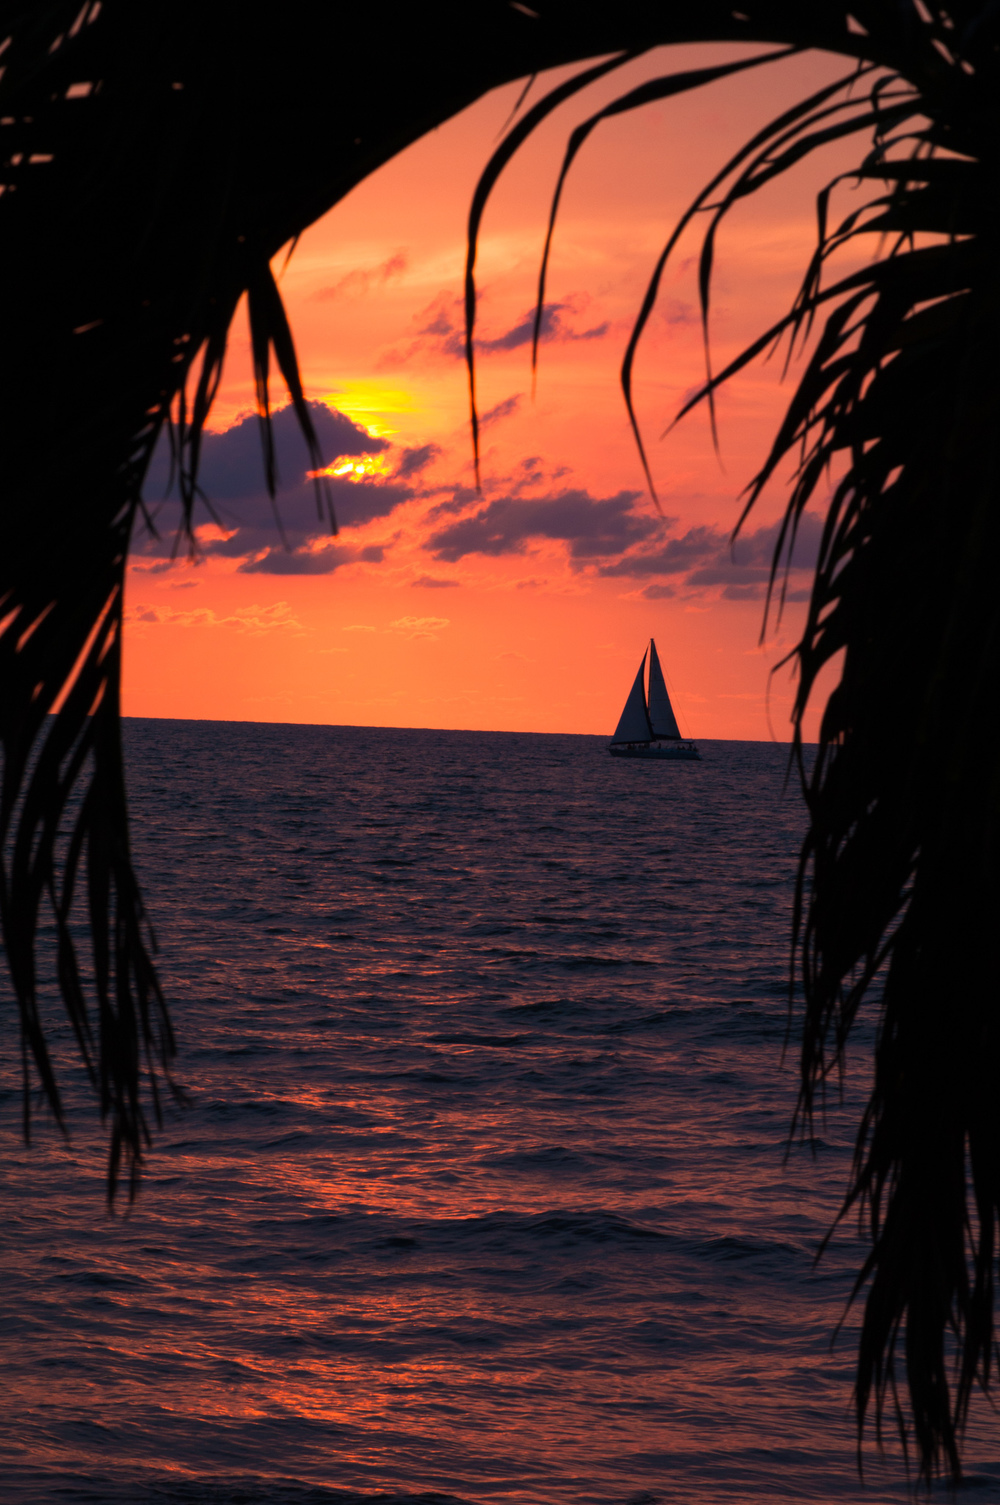 sunset with boat.jpg